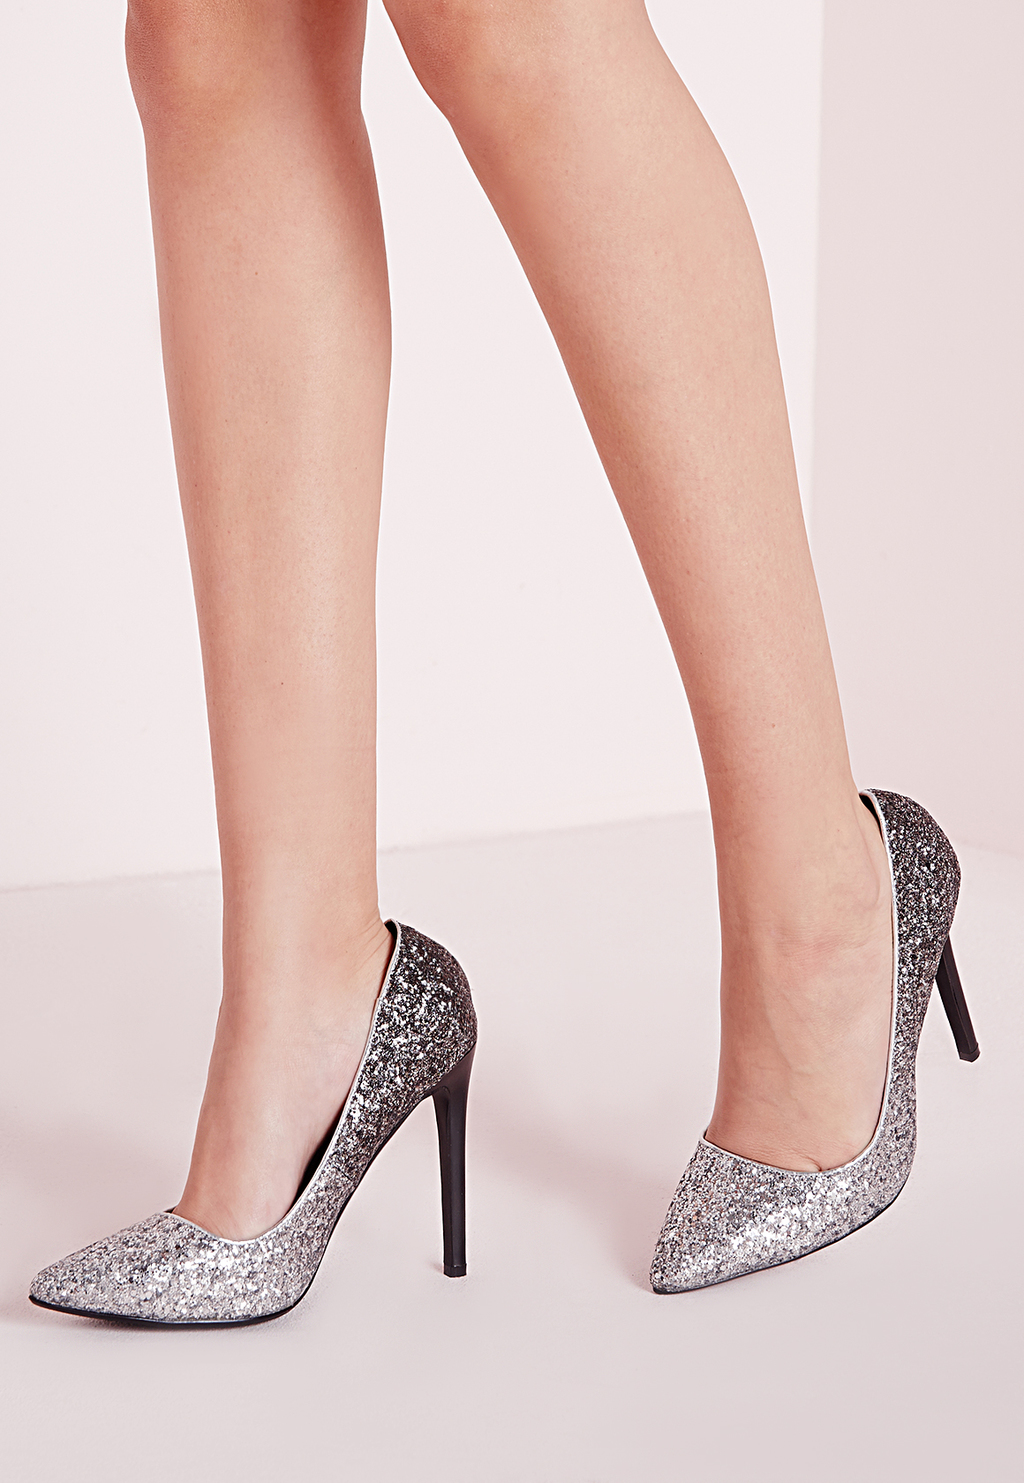 Ombre Glitter Court Shoes Silver, Grey - predominant colour: silver; secondary colour: black; occasions: evening, occasion; material: faux leather; embellishment: glitter; heel: stiletto; toe: pointed toe; style: courts; finish: metallic; pattern: two-tone; heel height: very high; season: a/w 2015; wardrobe: event